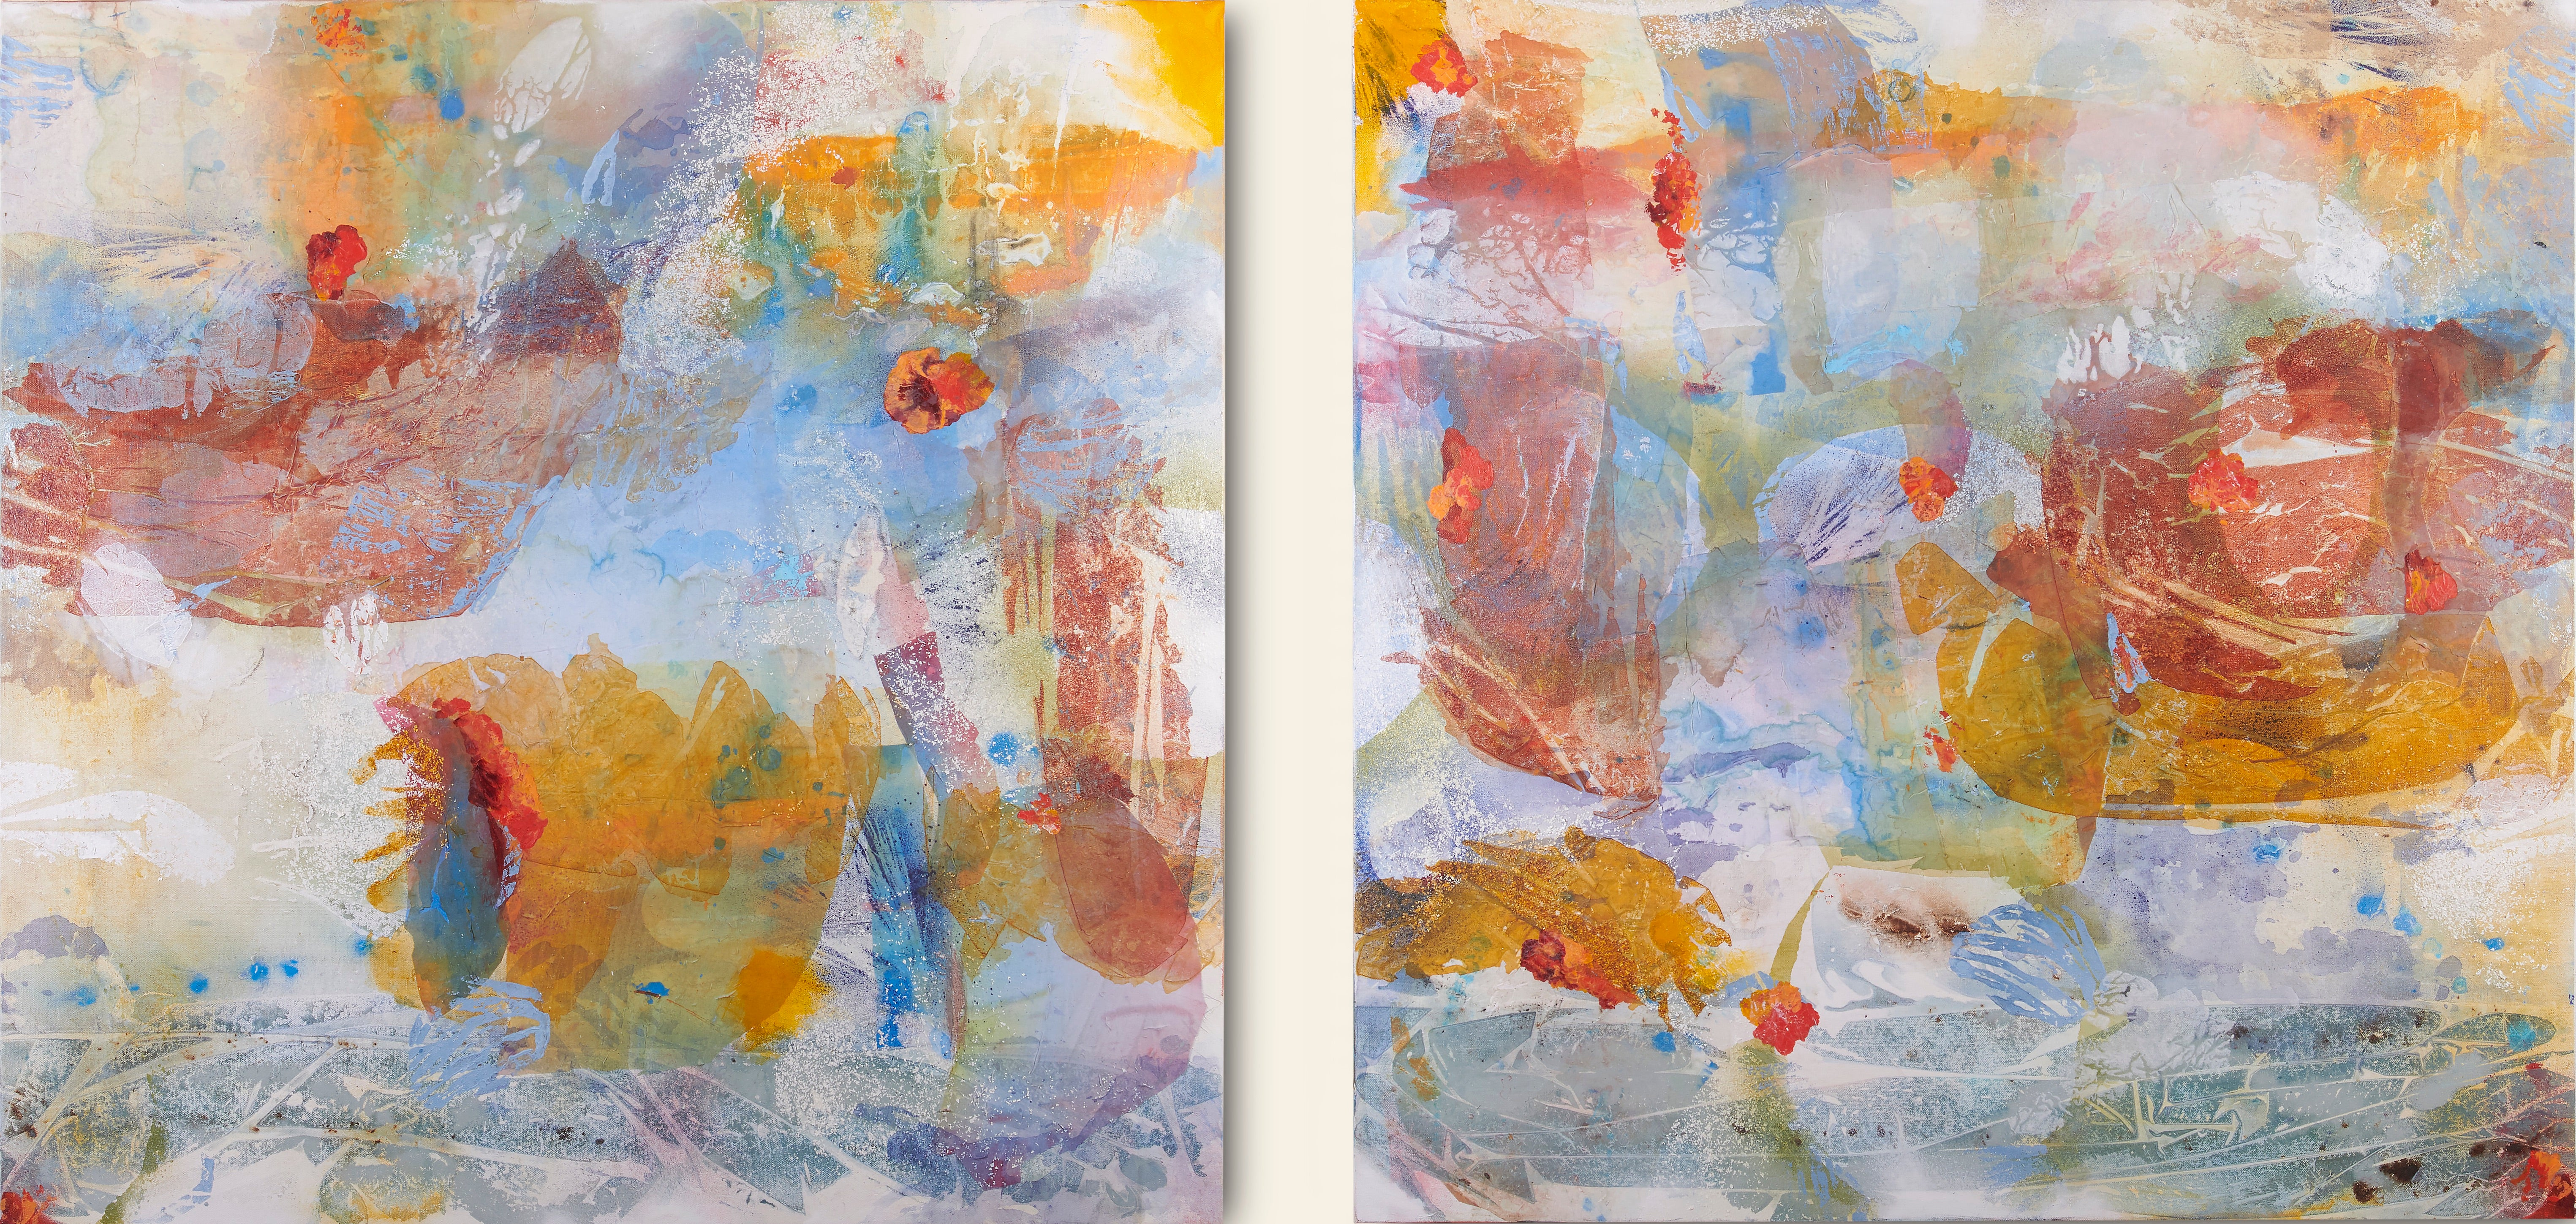 Water Barge with Onlookers (Diptych) Stunning Abstract Landscape in Blue + Grey